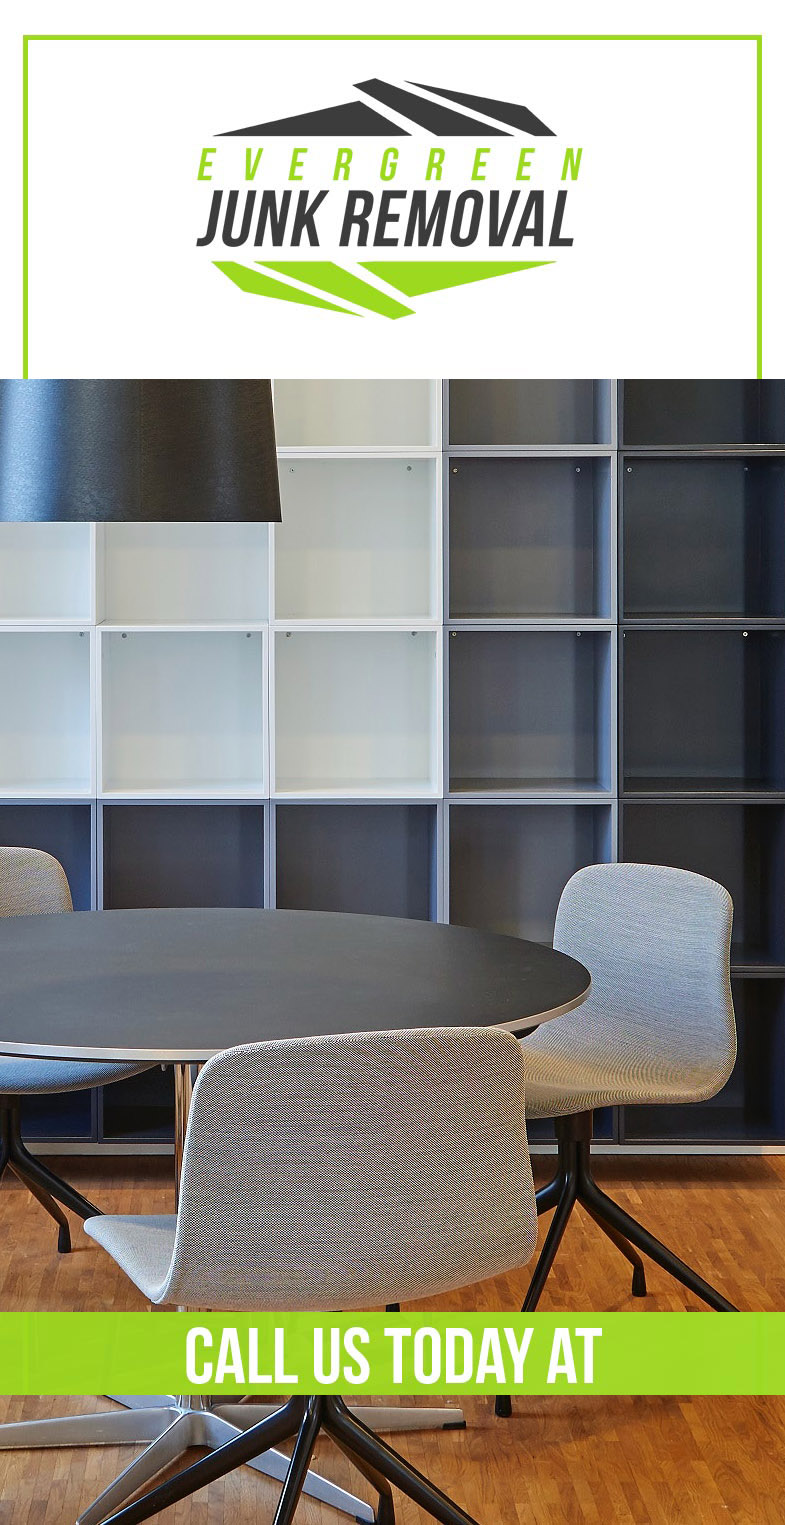 Office Cleaning Services Deerfield Beach FL